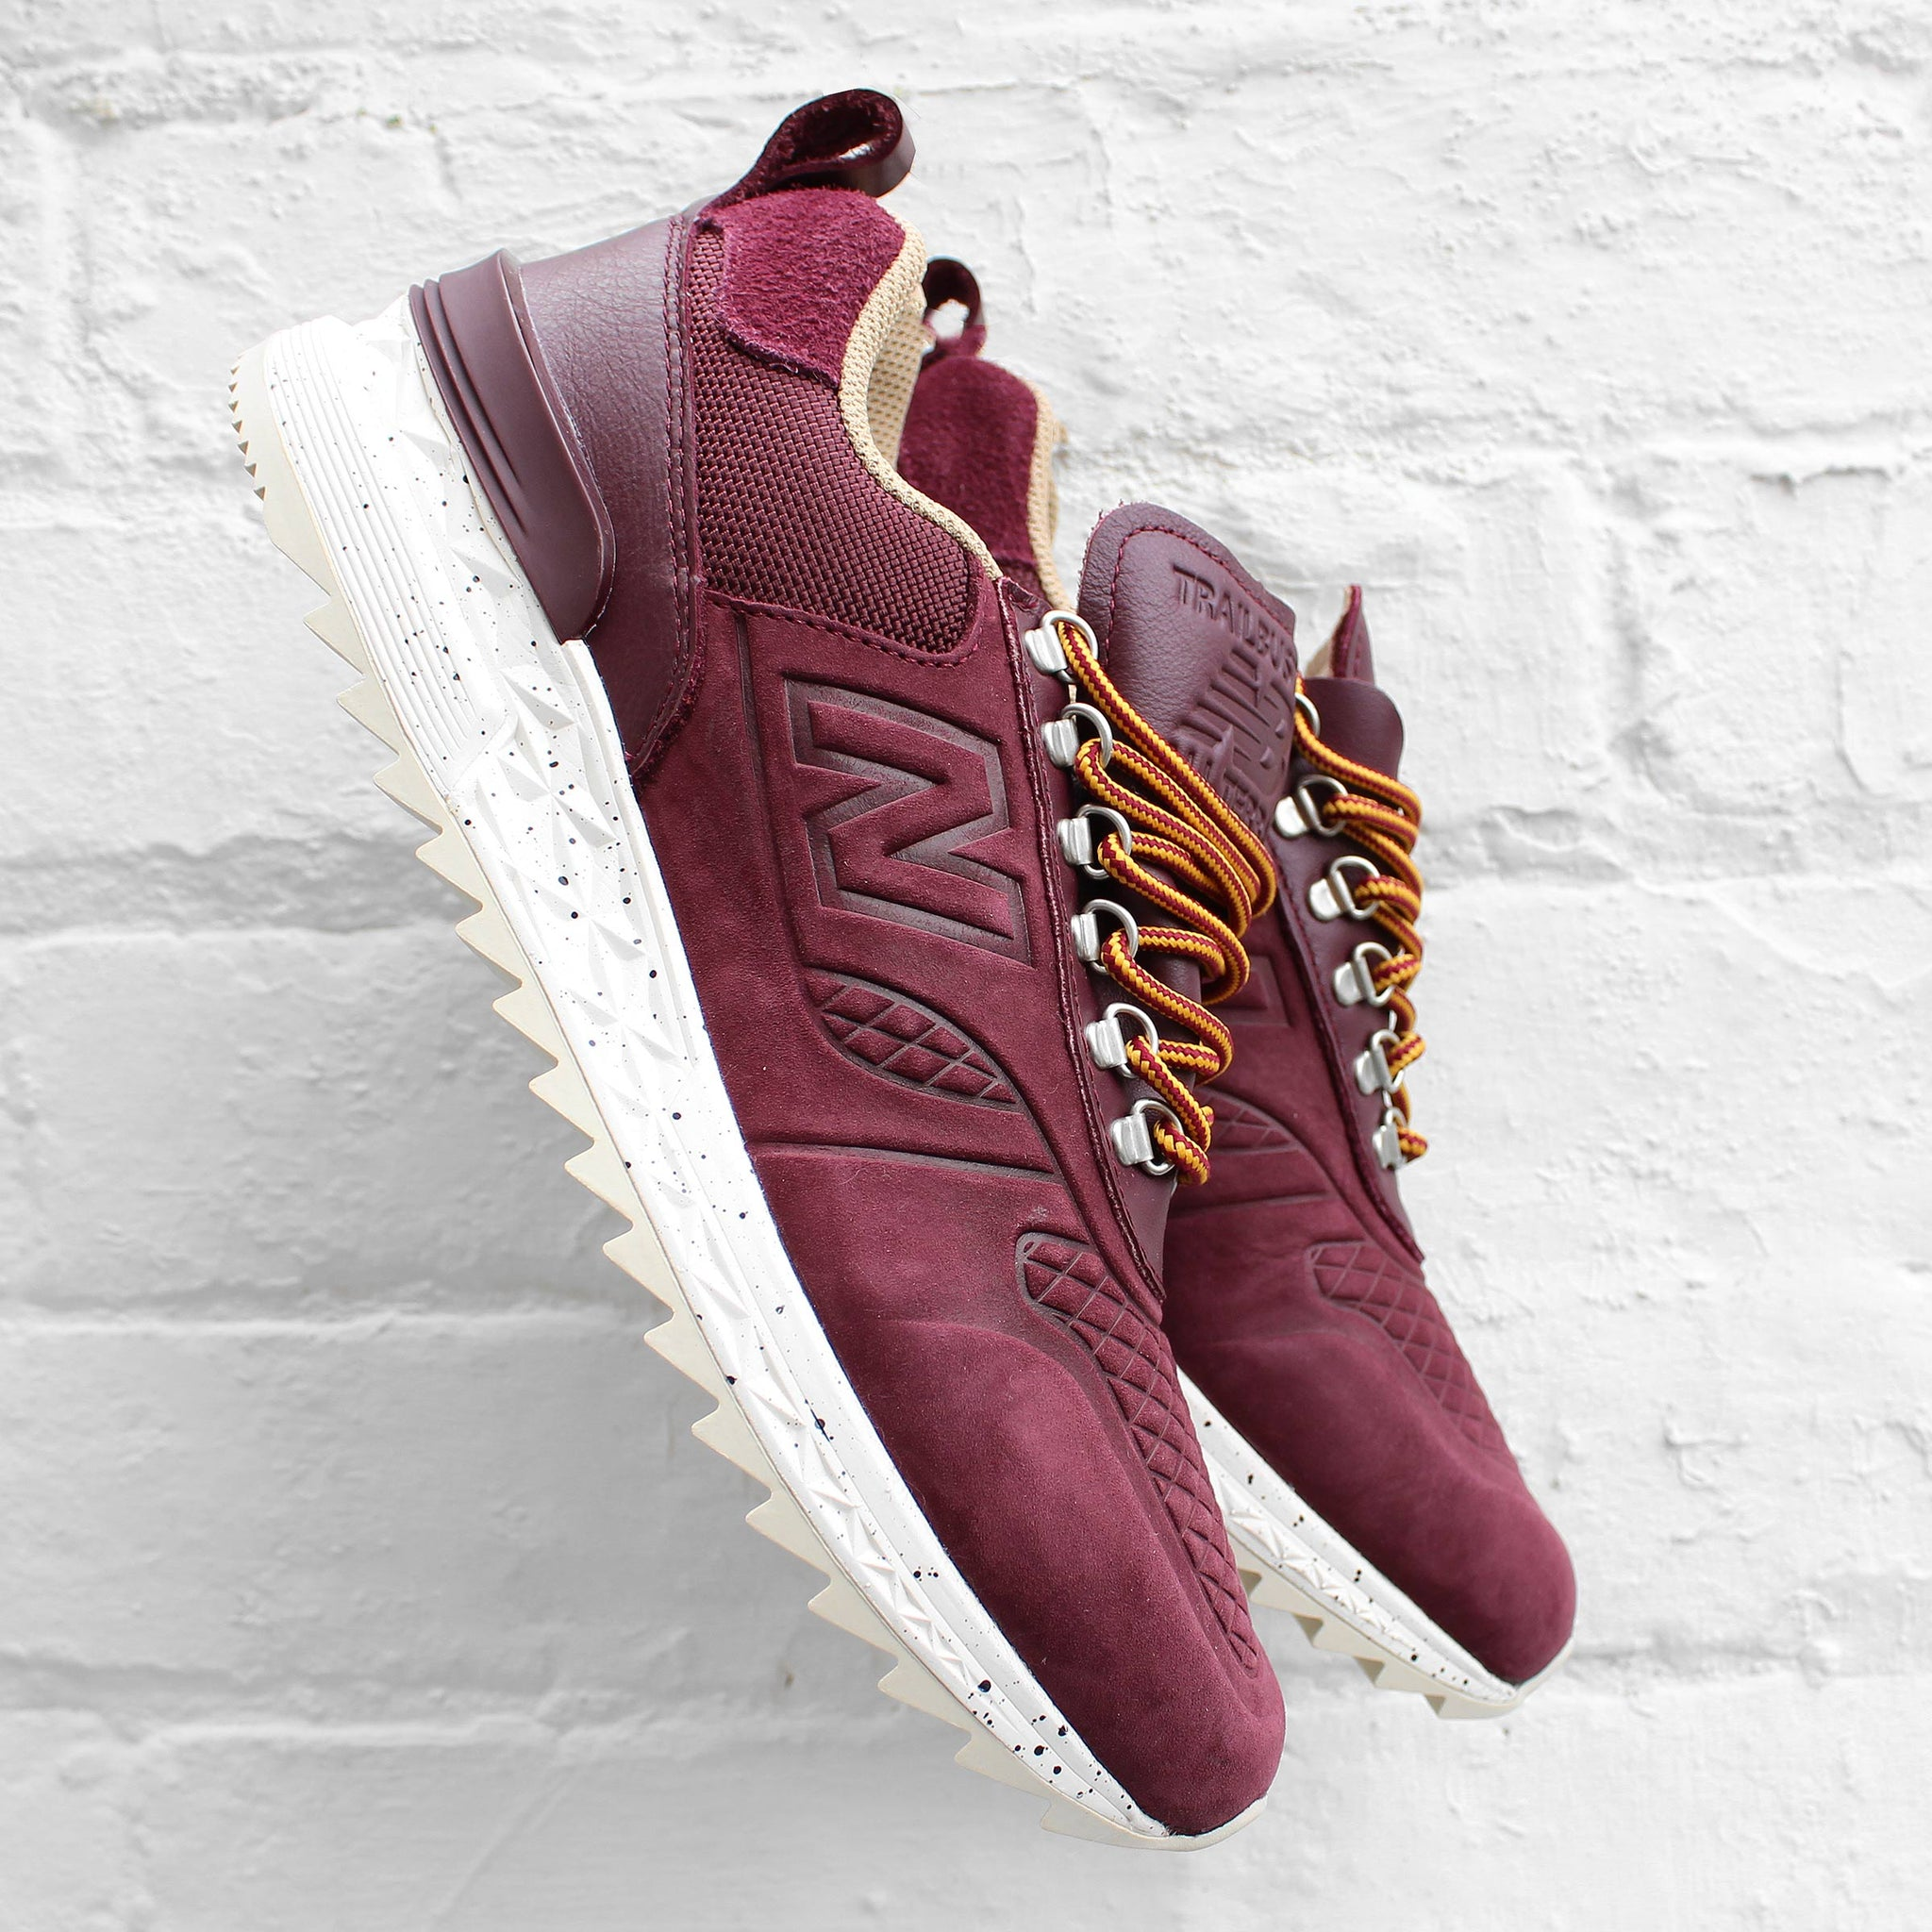 New Balance Trailbuster  Chocolate Cherry /Incense TBATRC